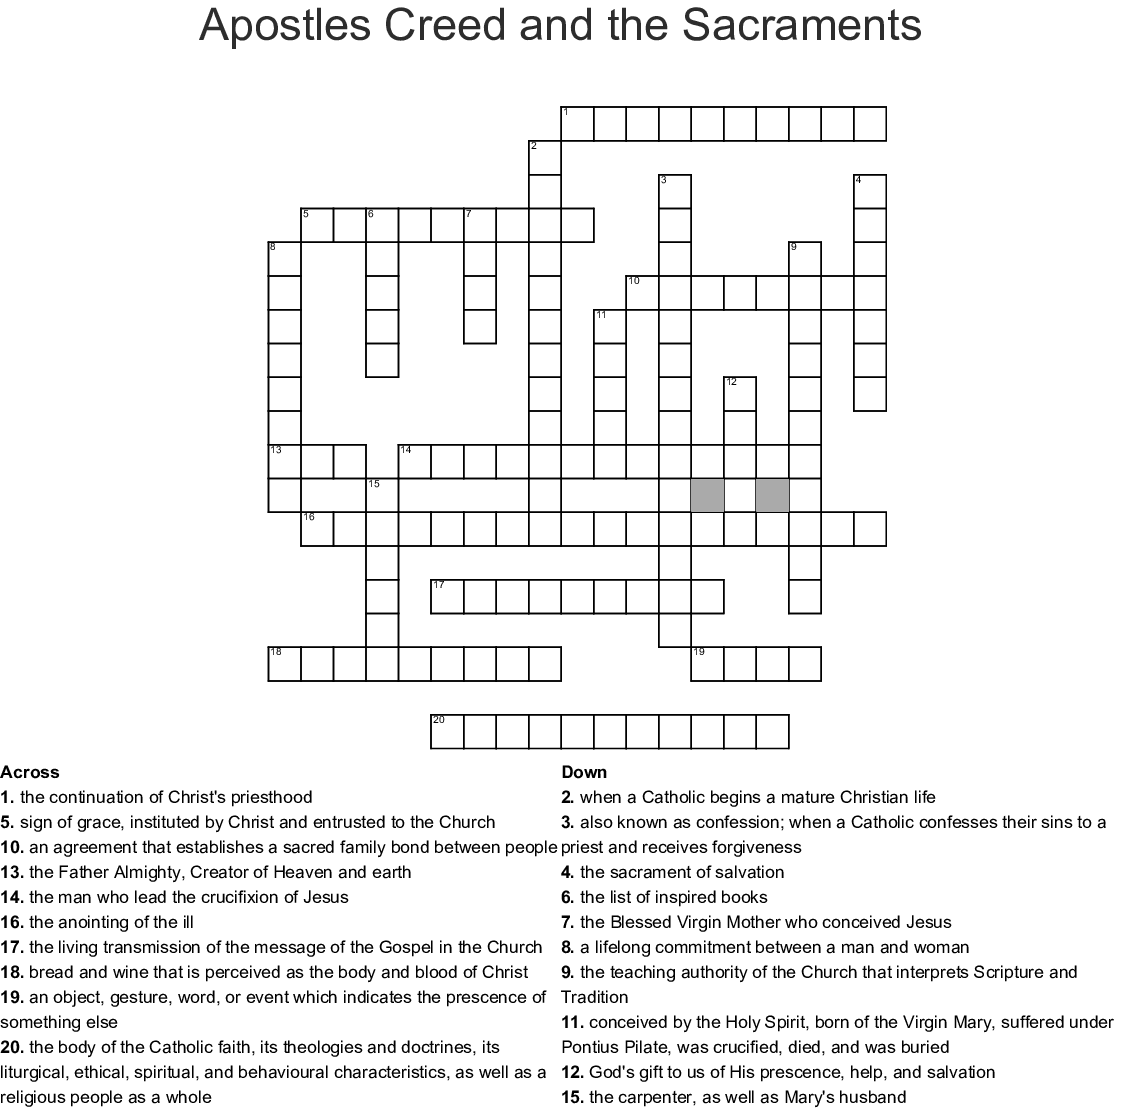 Apostles Creed And The Sacraments Crossword